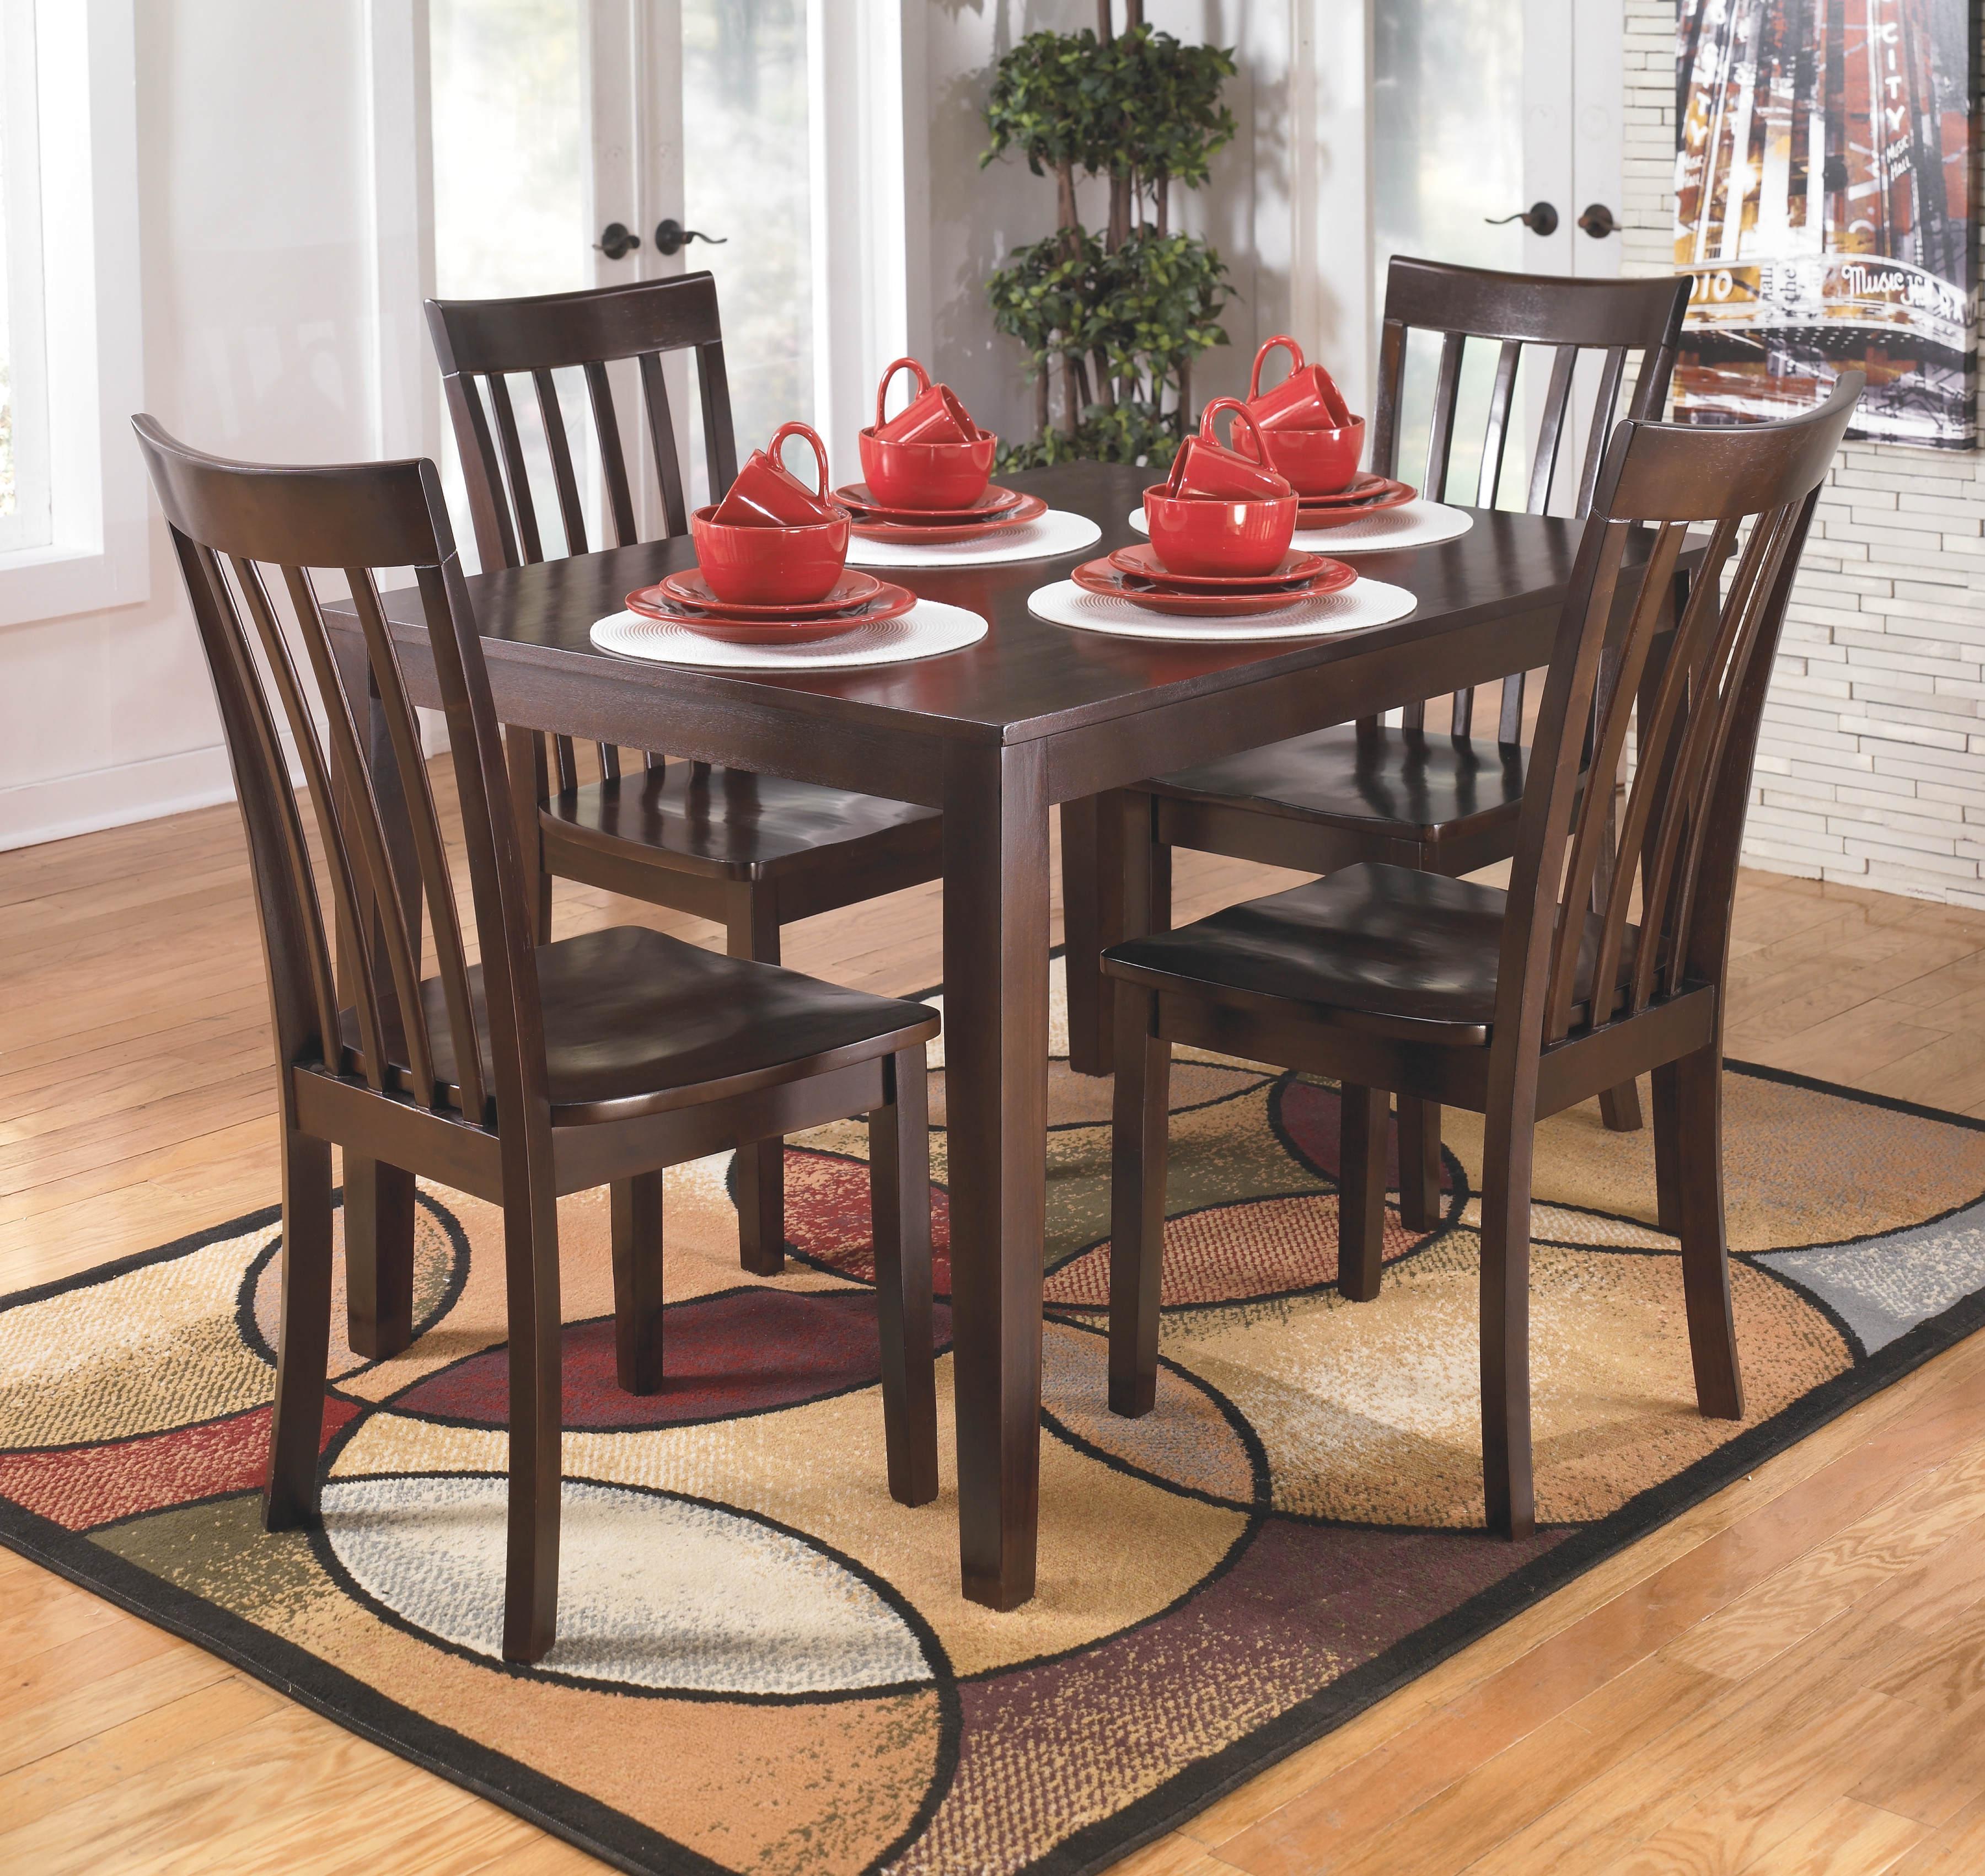 Dining Table Set By Ashley Furniture D258 225 The Furniture Mall